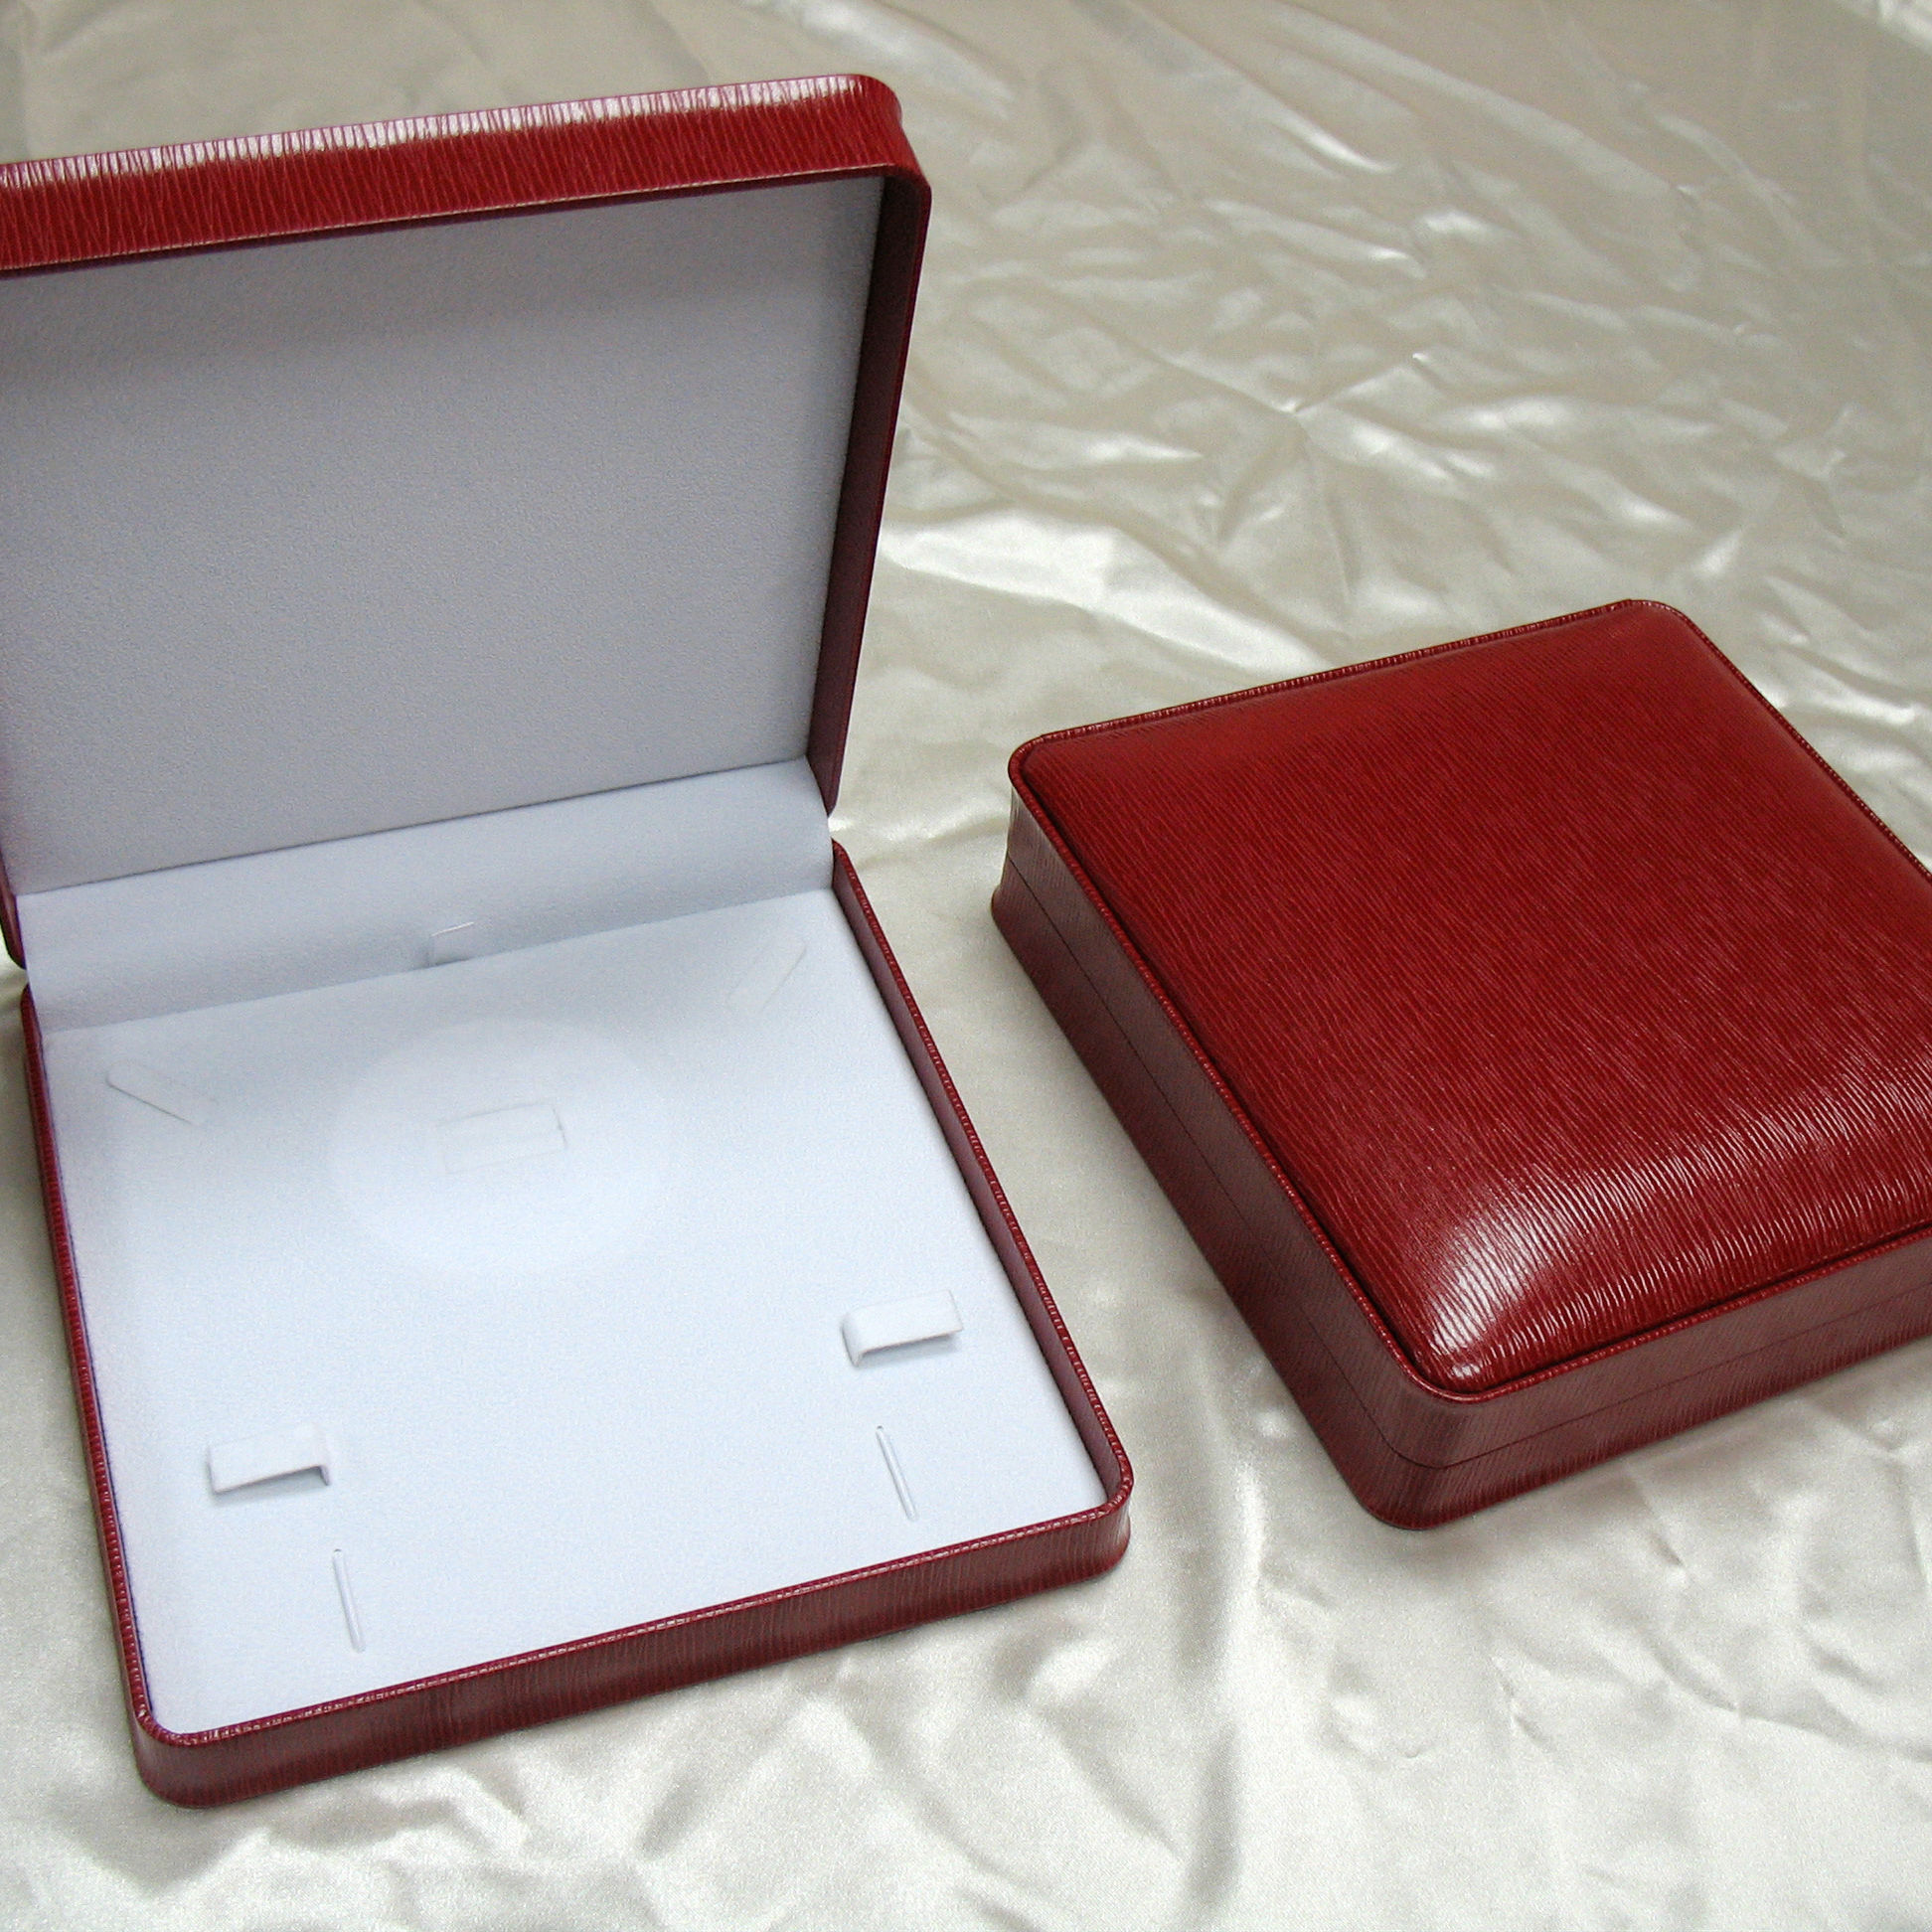 Chinese Red Leatherette jewelry boxes Necklace boxes for gift packaging boxes